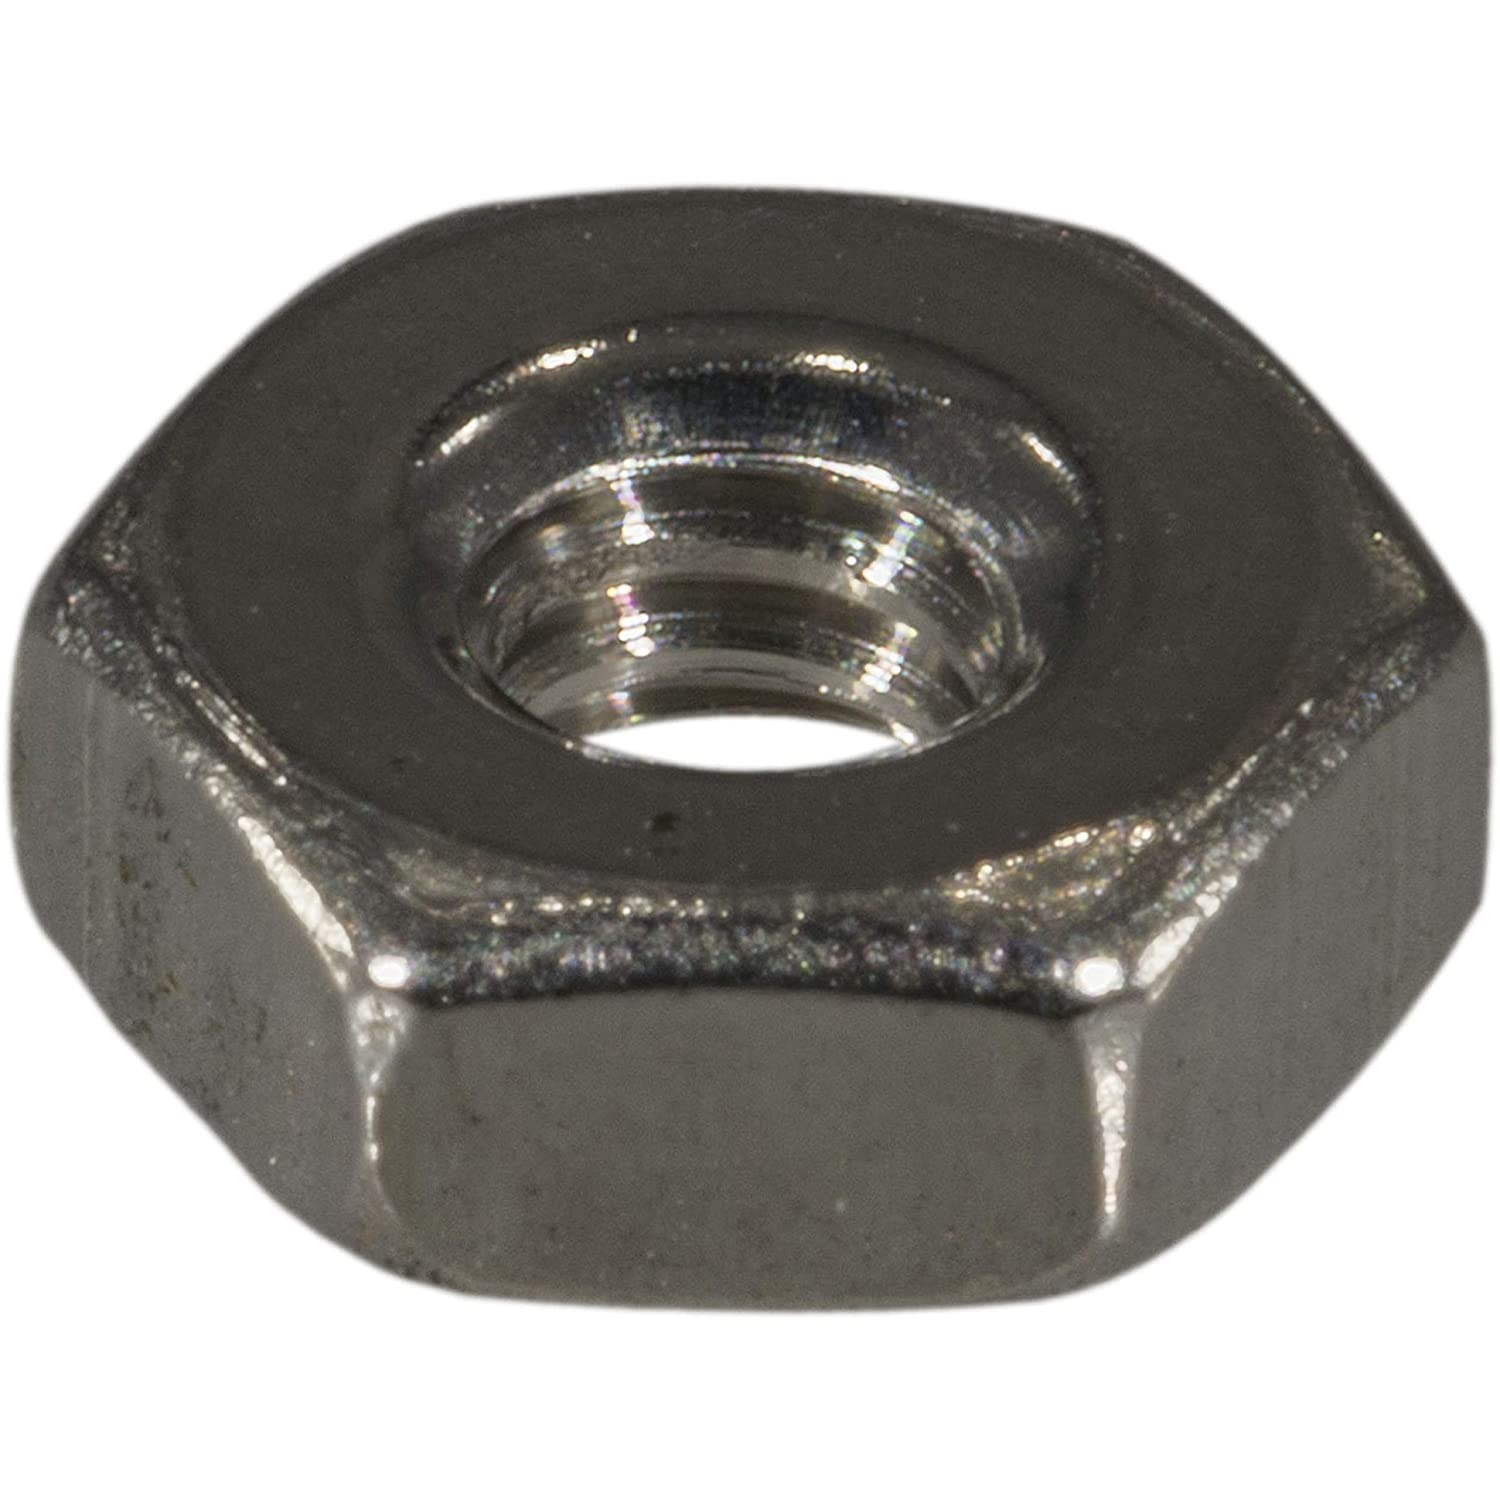 Piece-100 Hard-to-Find Fastener 014973191030 Coarse Finished Hex Nuts 4-40